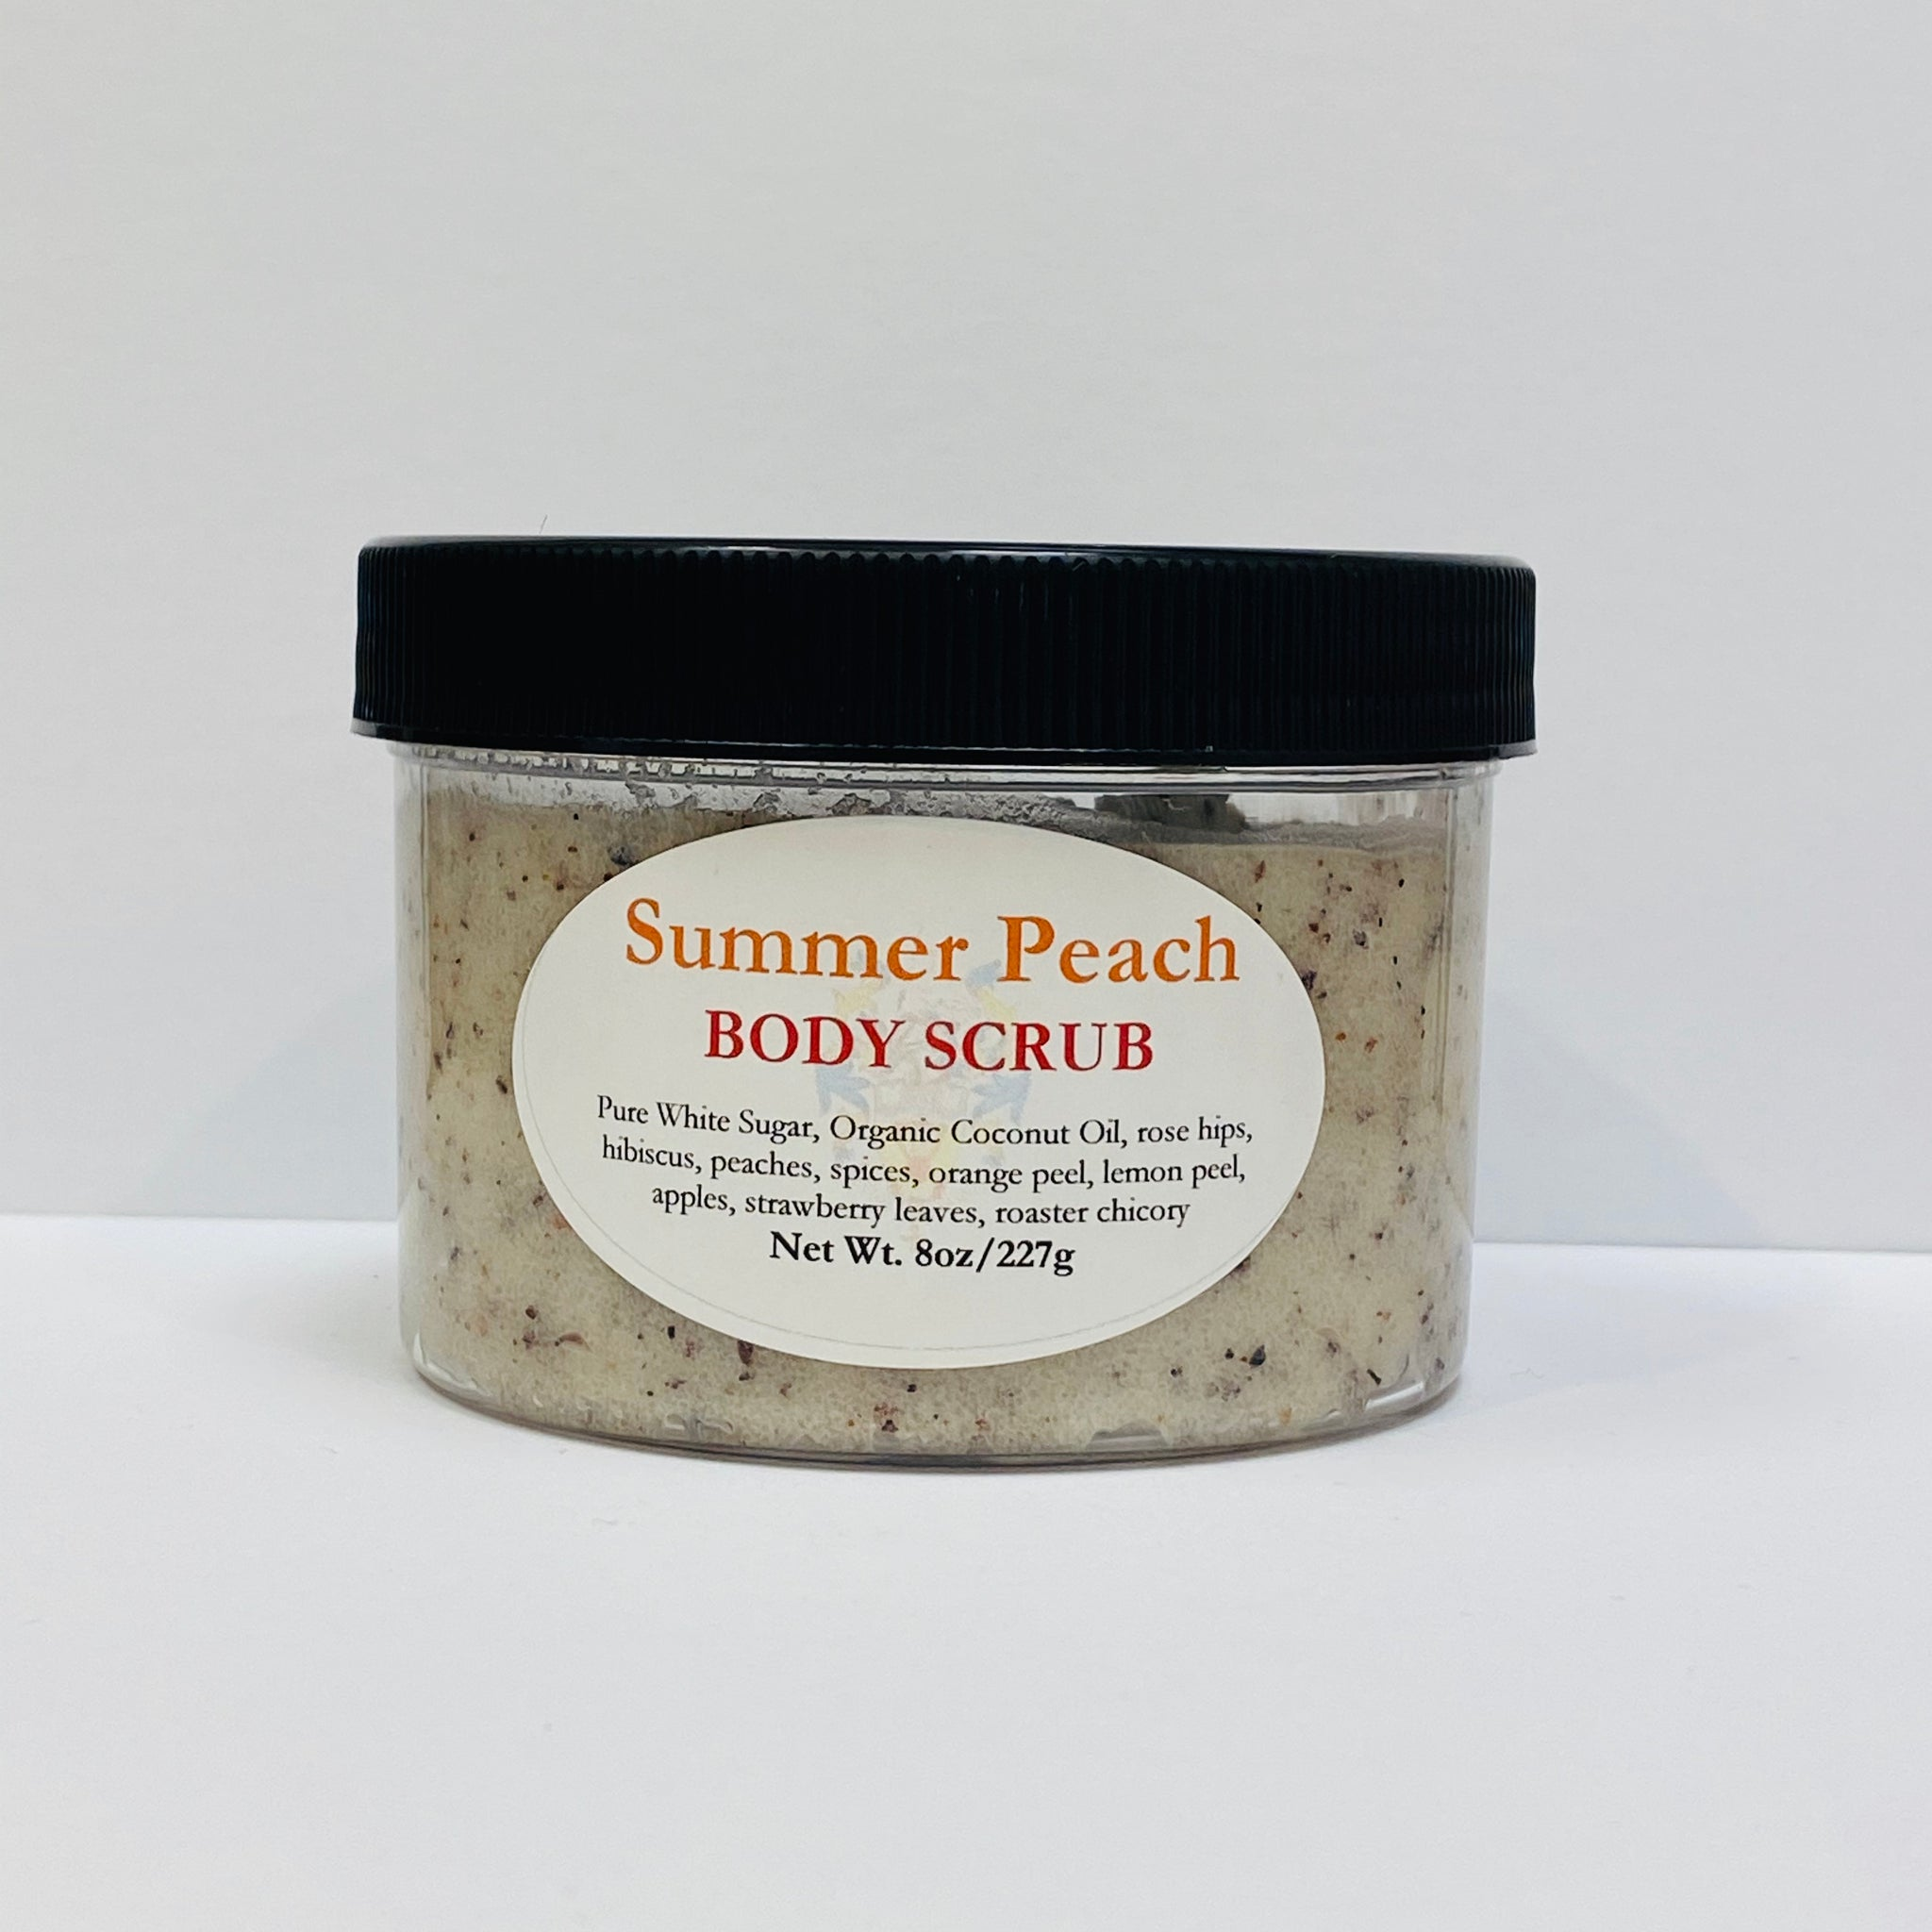 Summer Peach Sugar Scrub